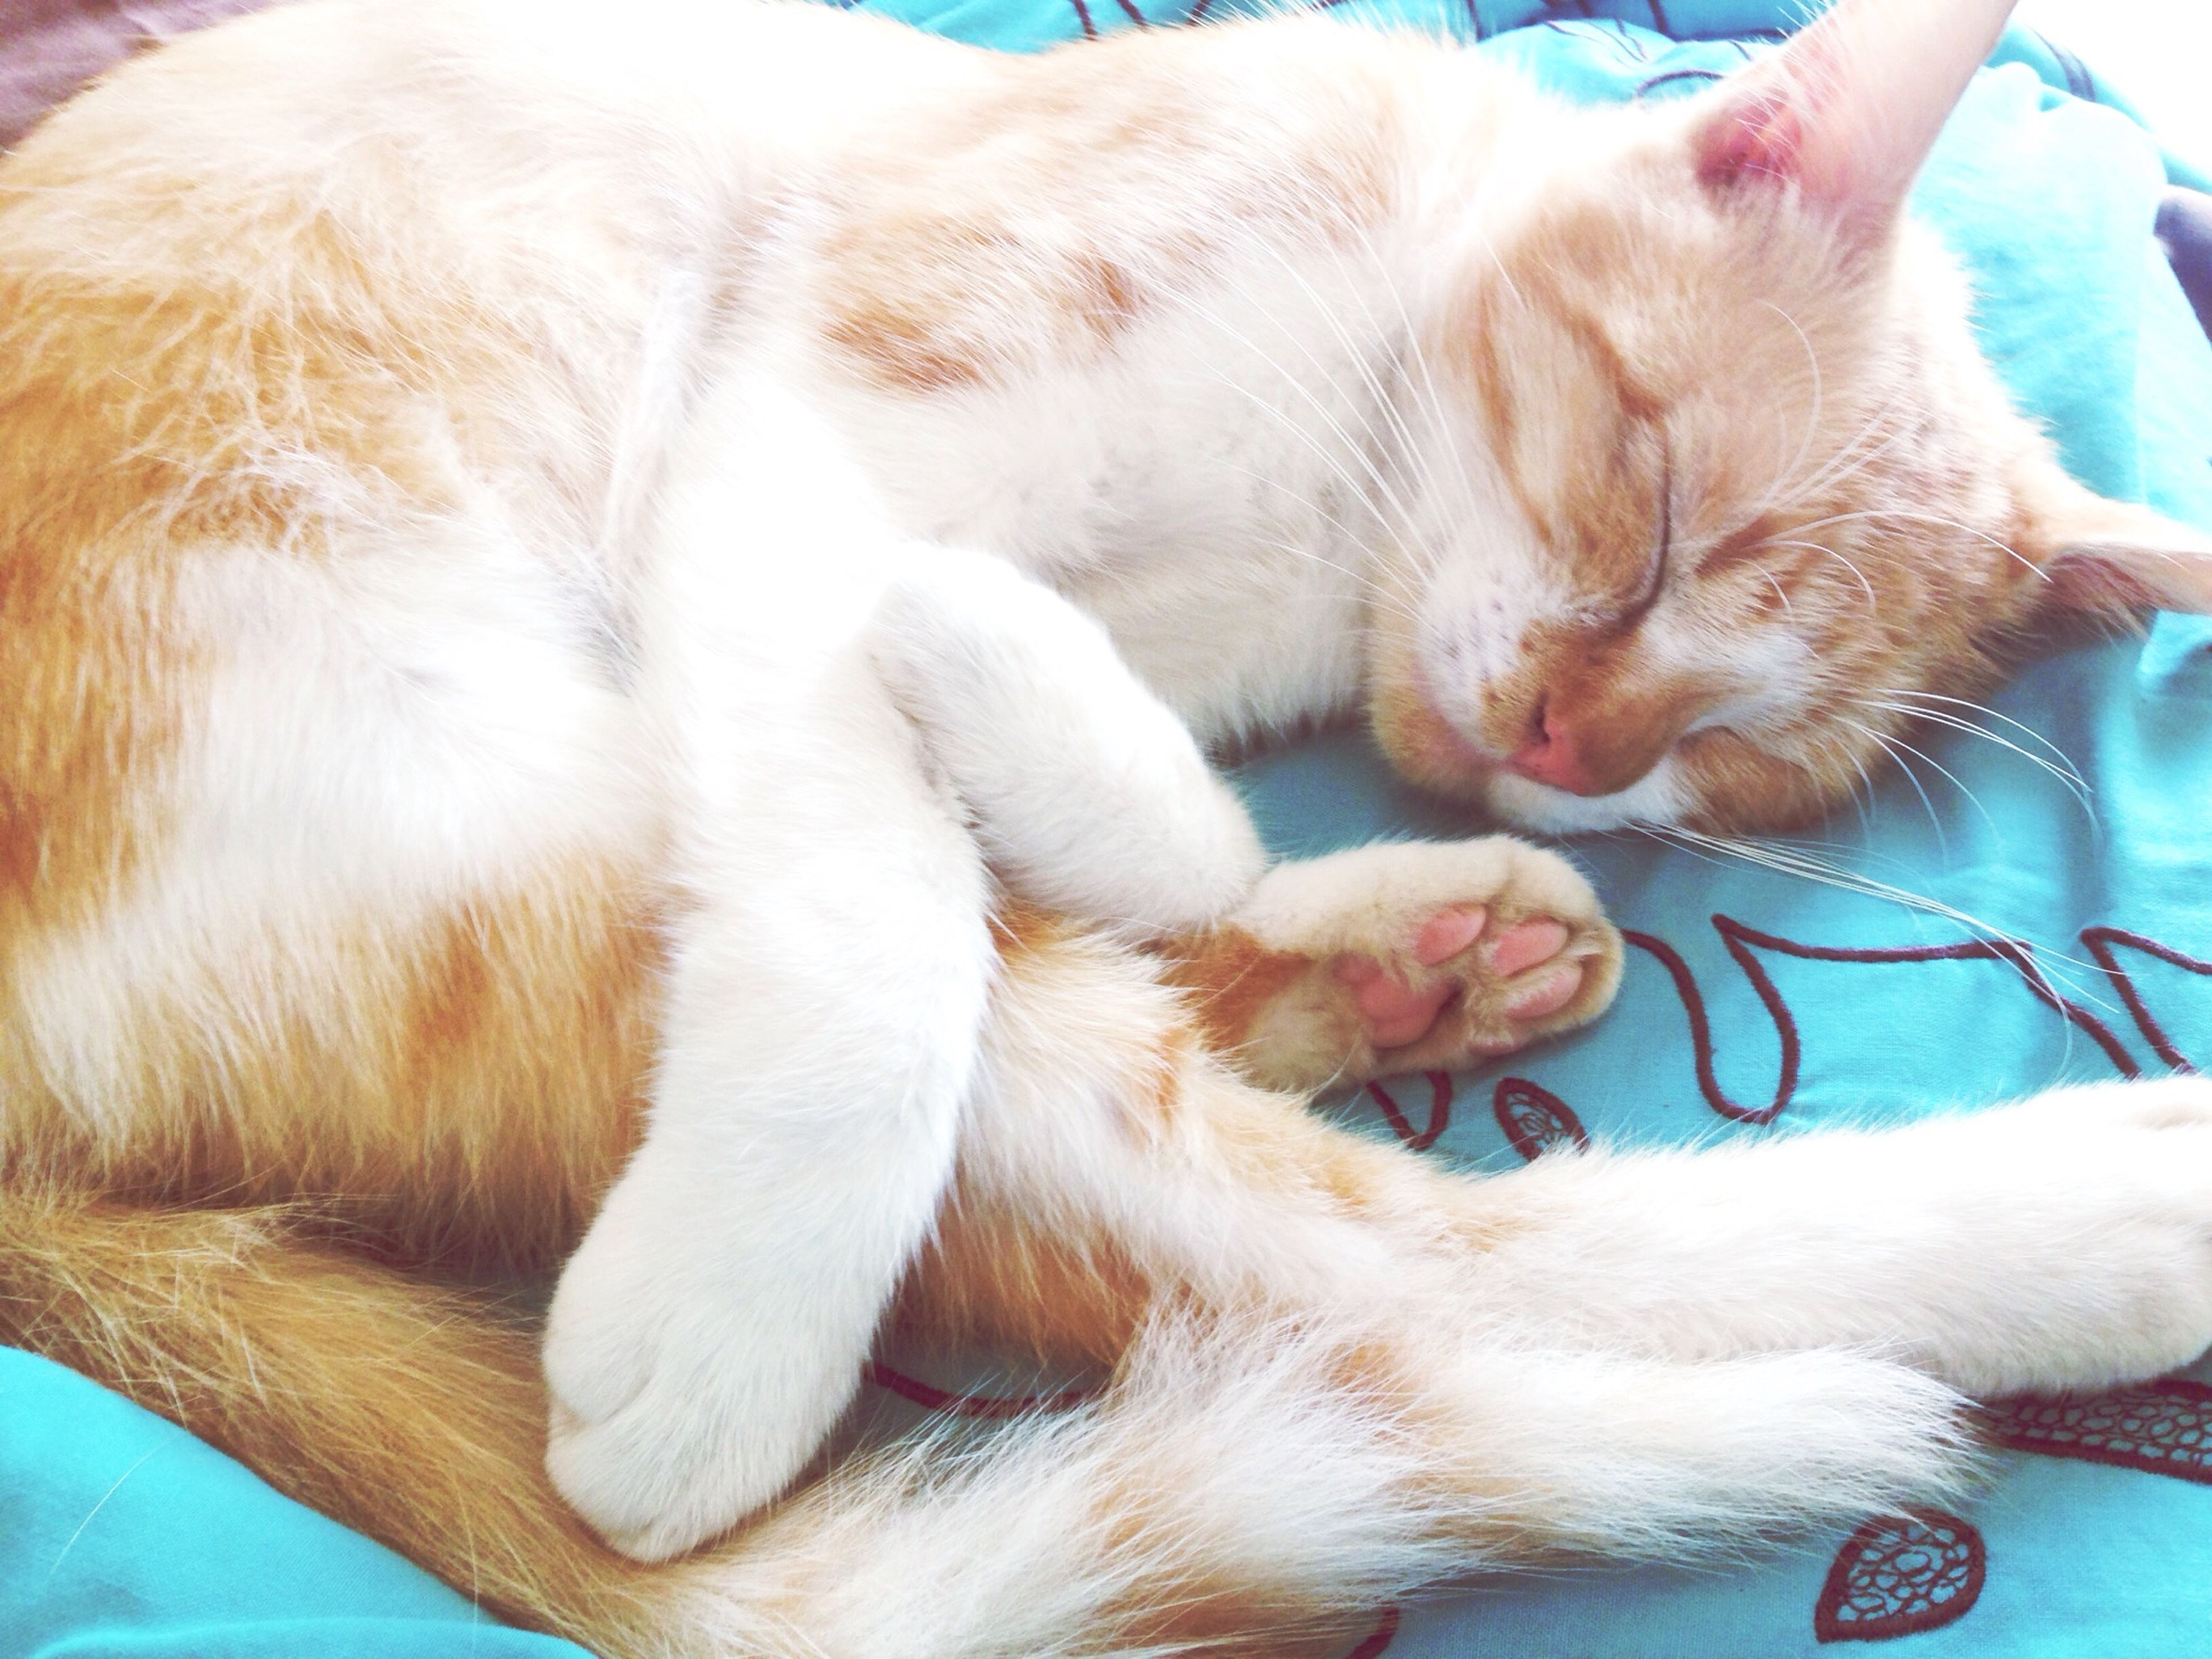 pets, domestic animals, mammal, domestic cat, animal themes, cat, one animal, feline, relaxation, indoors, sleeping, resting, lying down, whisker, close-up, eyes closed, animal head, bed, high angle view, no people